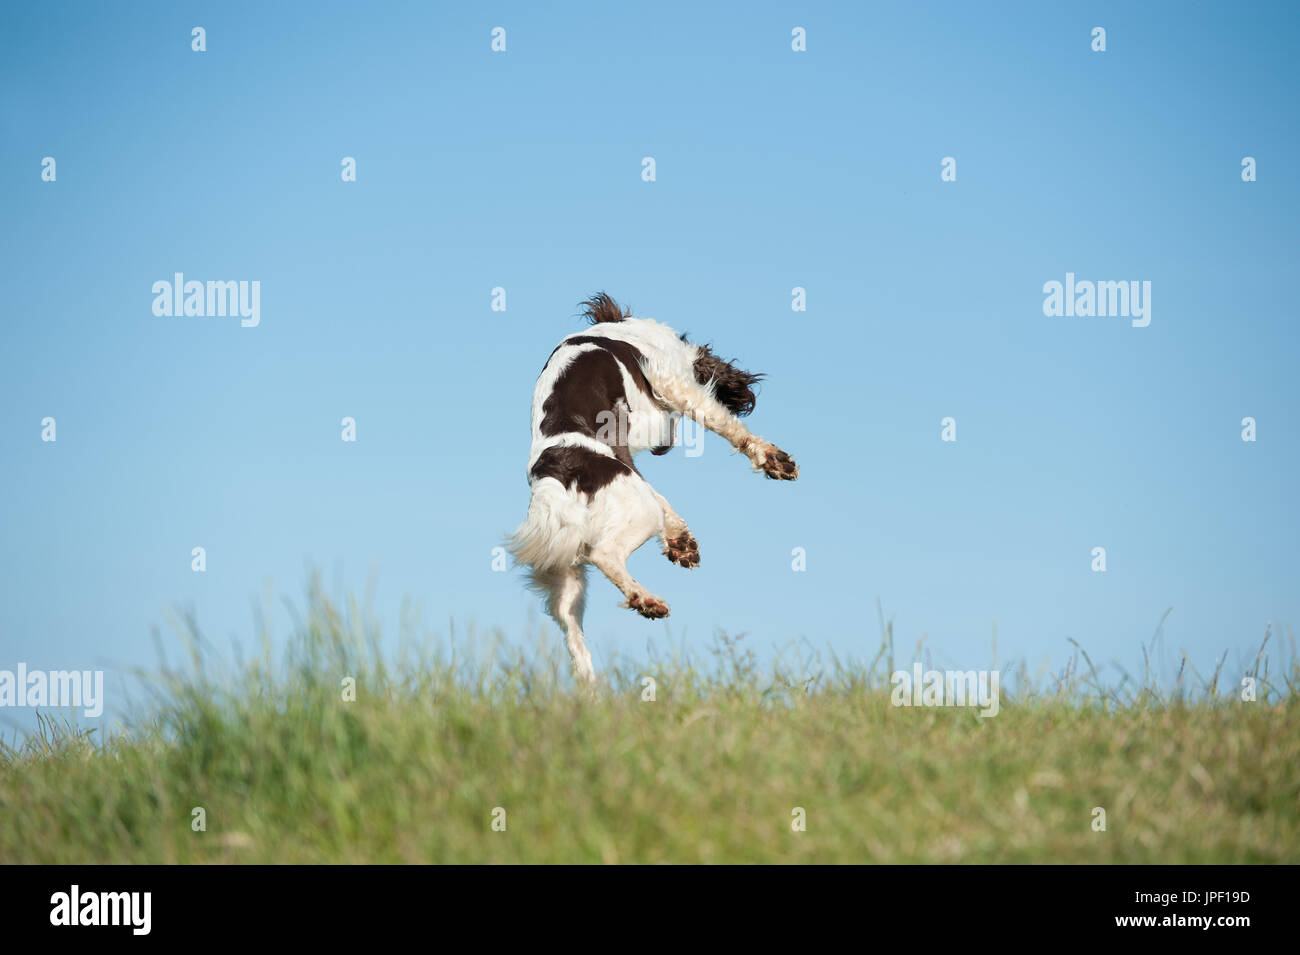 Springer spaniel leaping in the air - Stock Image